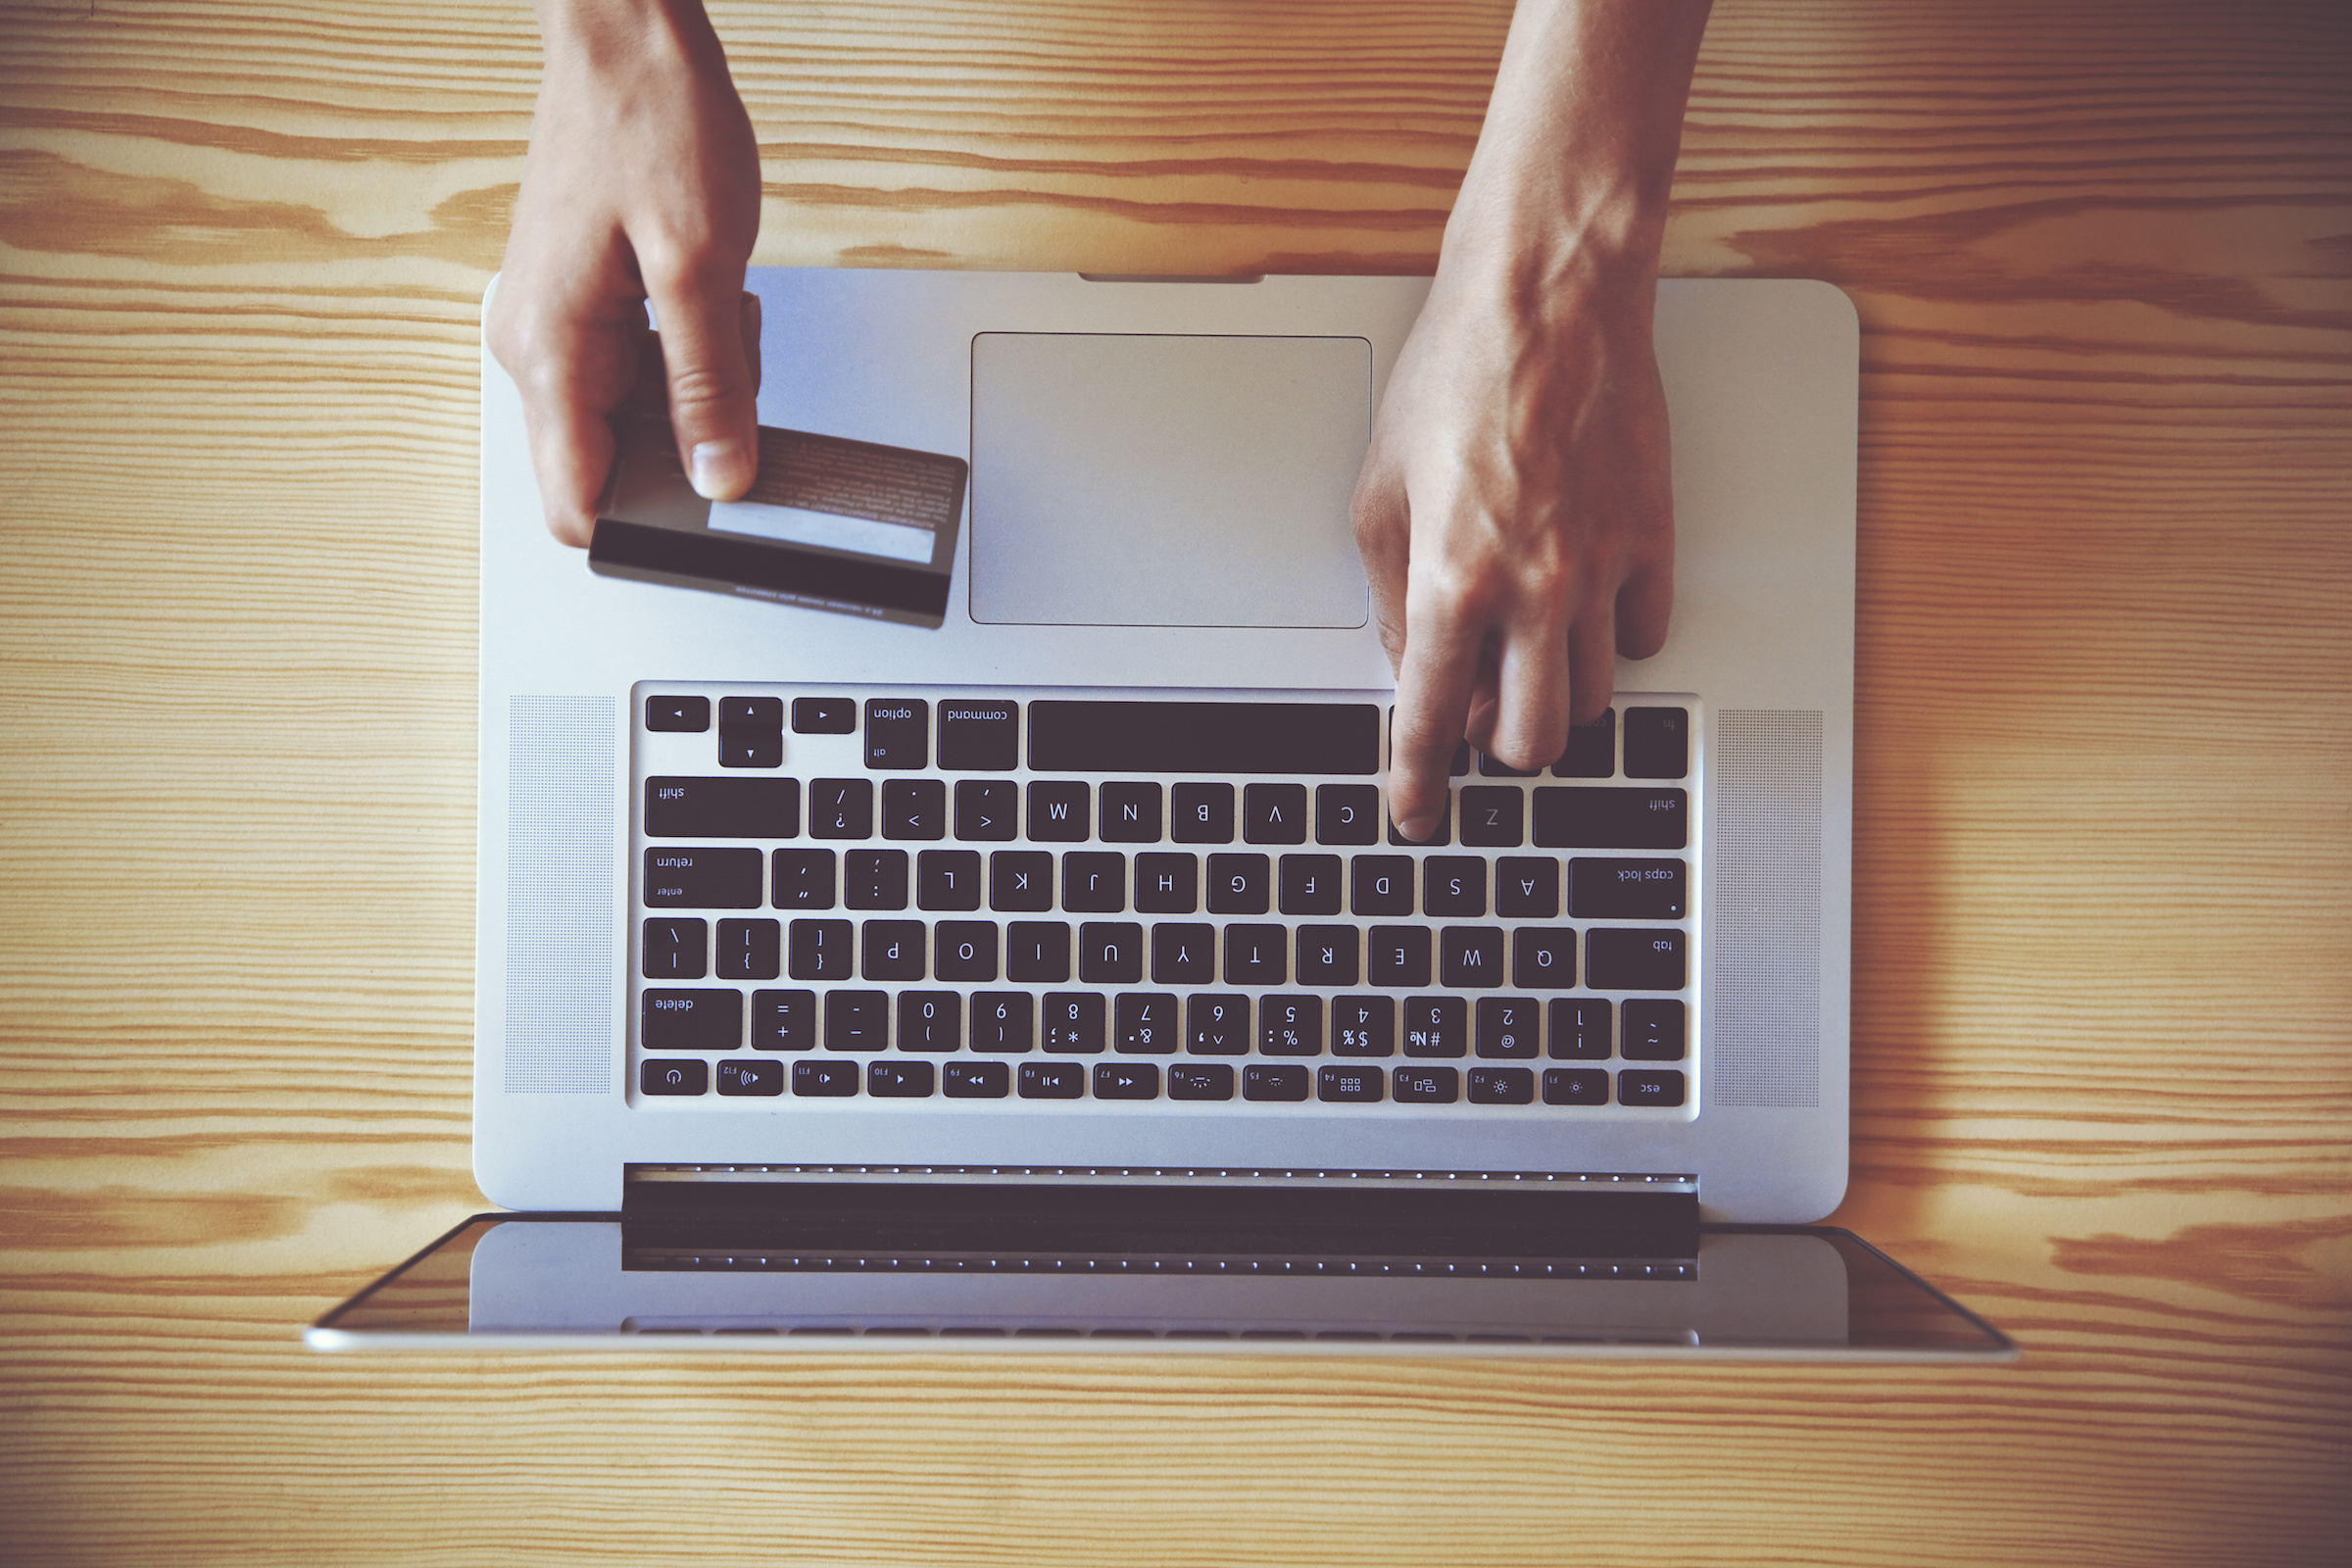 What To Know About Camino Checking Accounts | Camino Federal Credit Union | Bird's eye view of a pair of hands holding credit card and using laptop